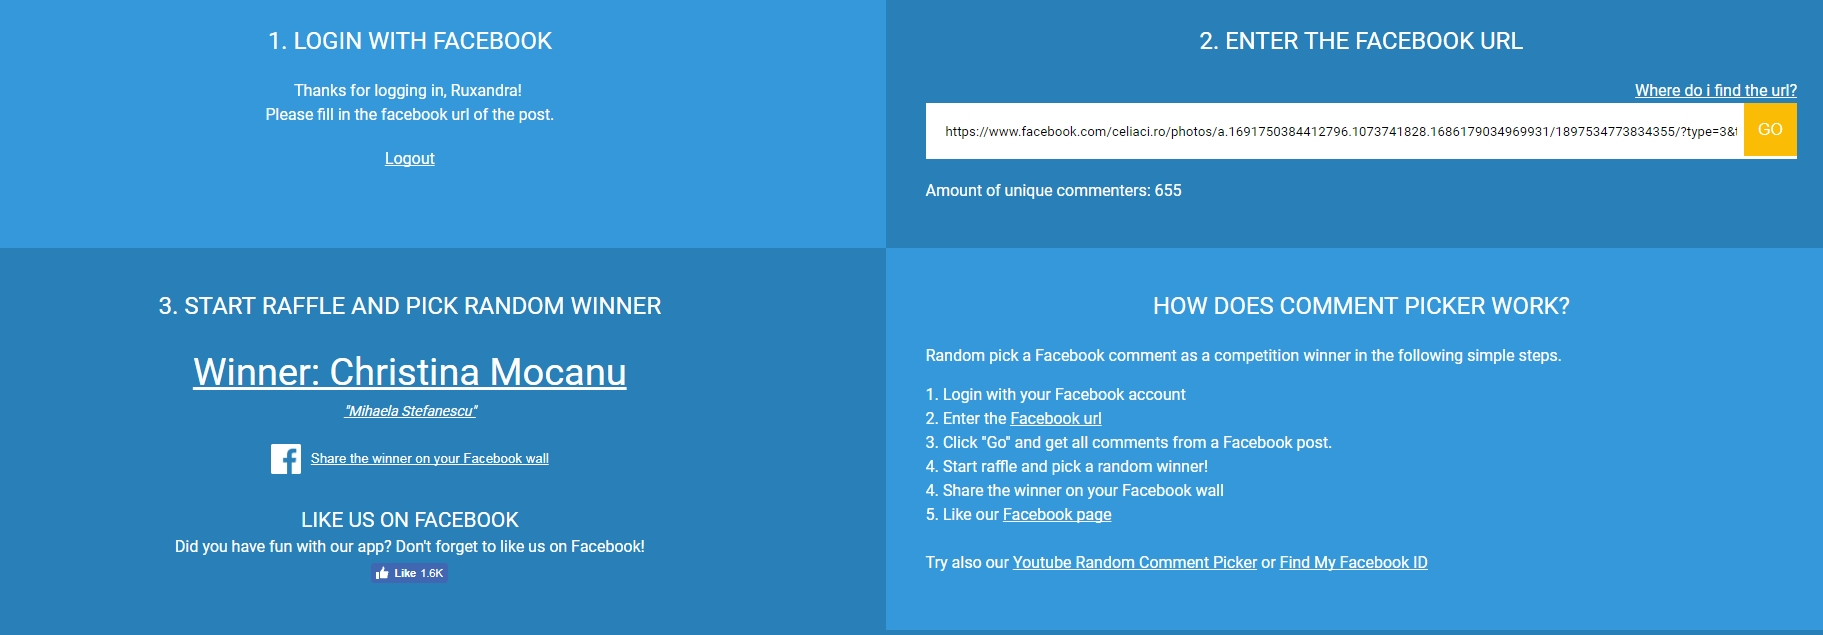 003336-Random Comment Picker for Facebook comments